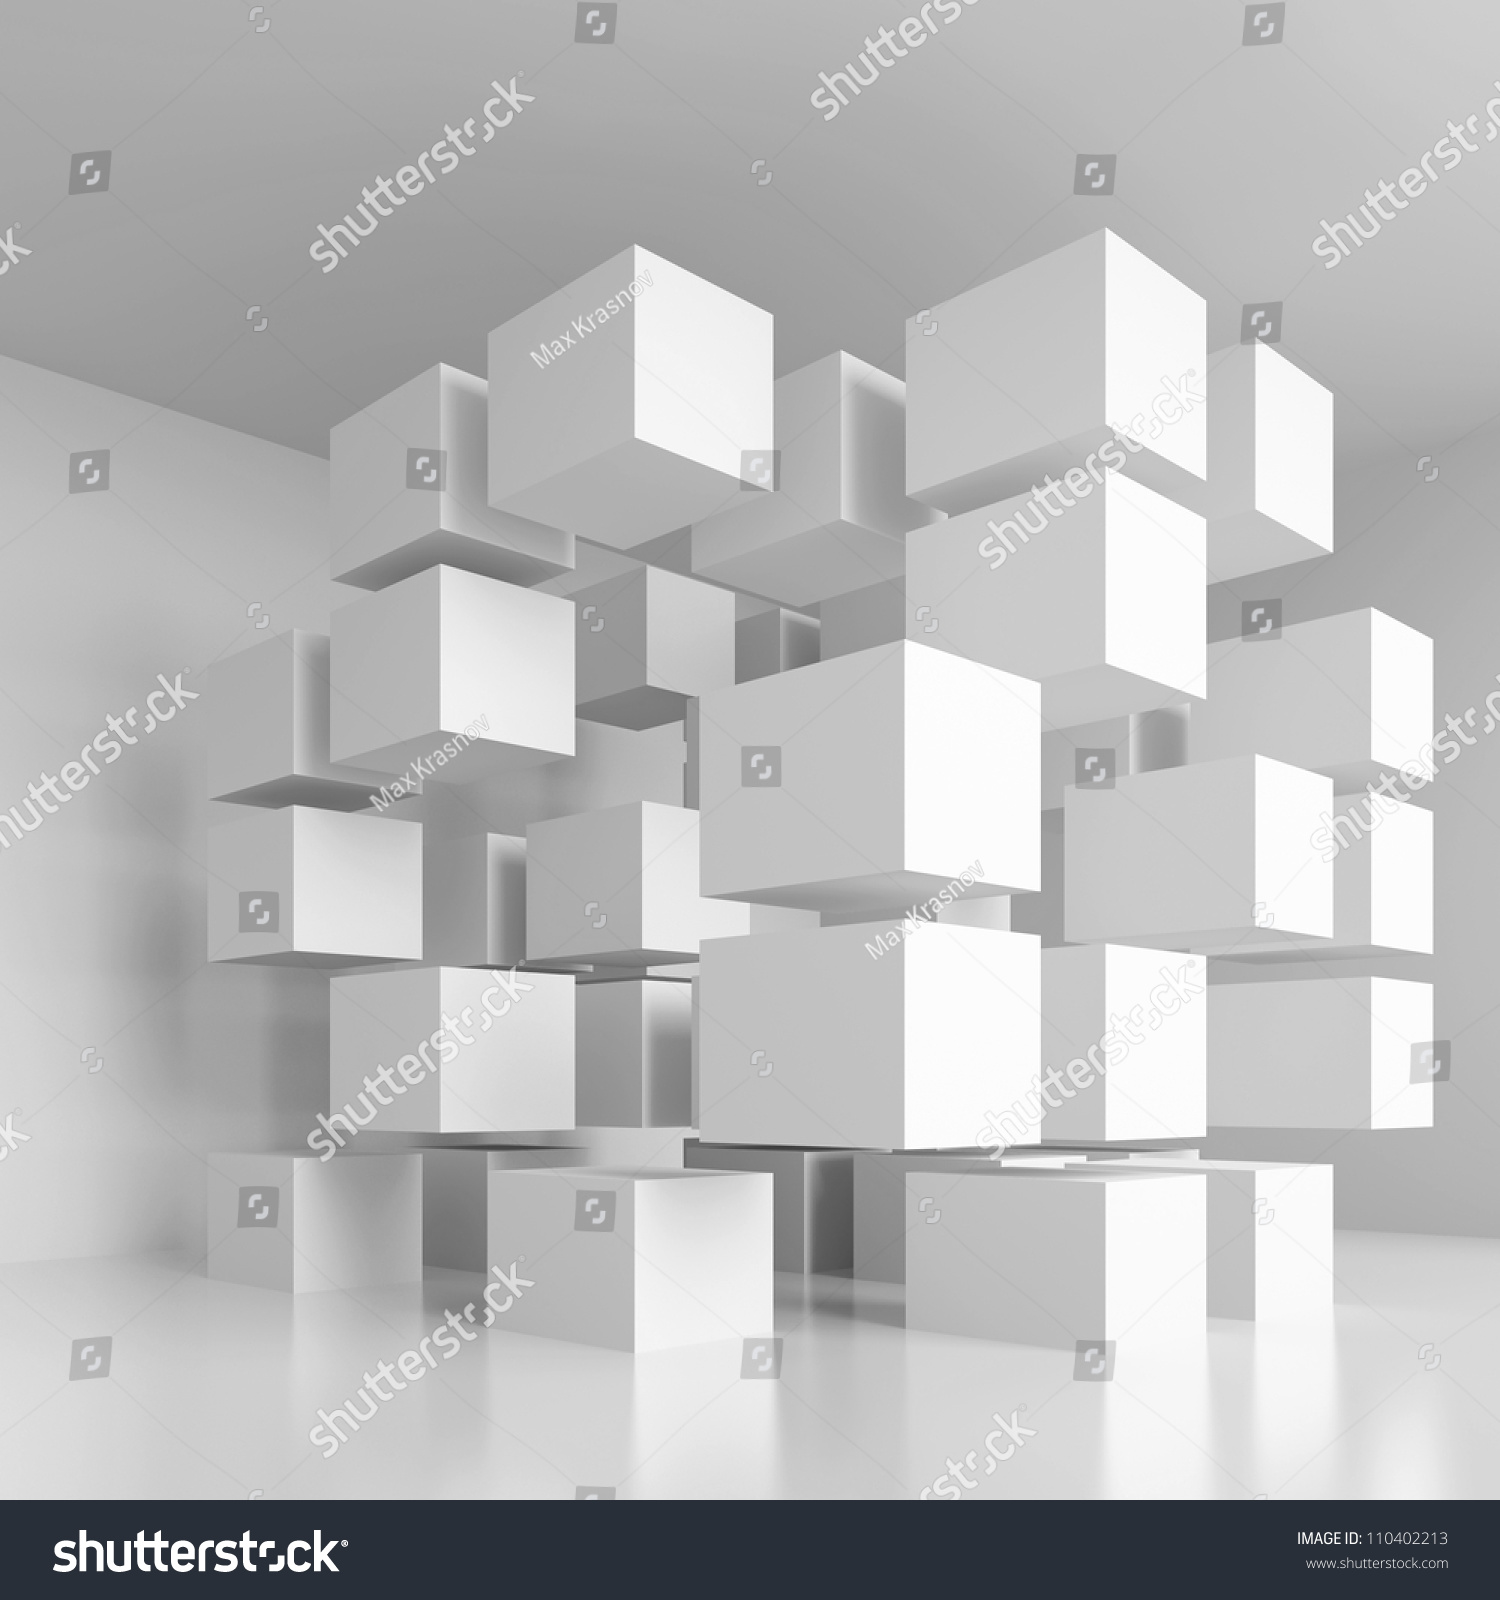 Creative interior design stock photo 110402213 shutterstock Creative interior design